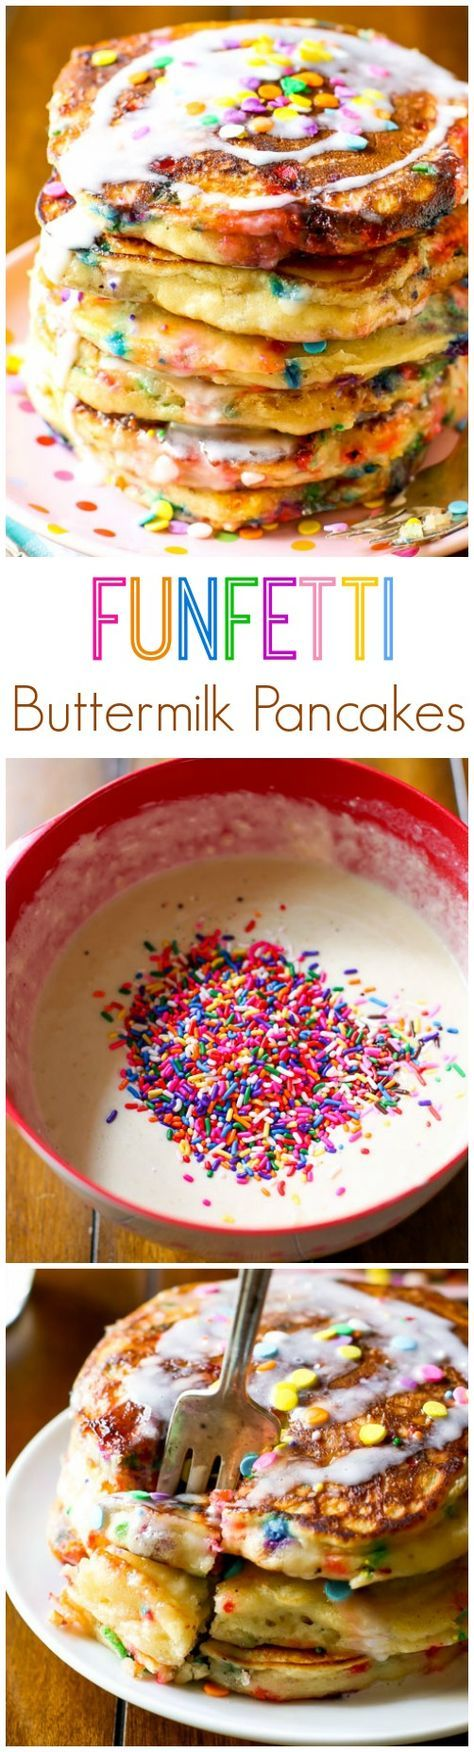 Funfetti Buttermilk Pancakes by sallysbakingaddiction.com. Fluffy and piled high, these vanilla glazed funfetti buttermilk pancakes are the sweetest way to wake up in the morning!